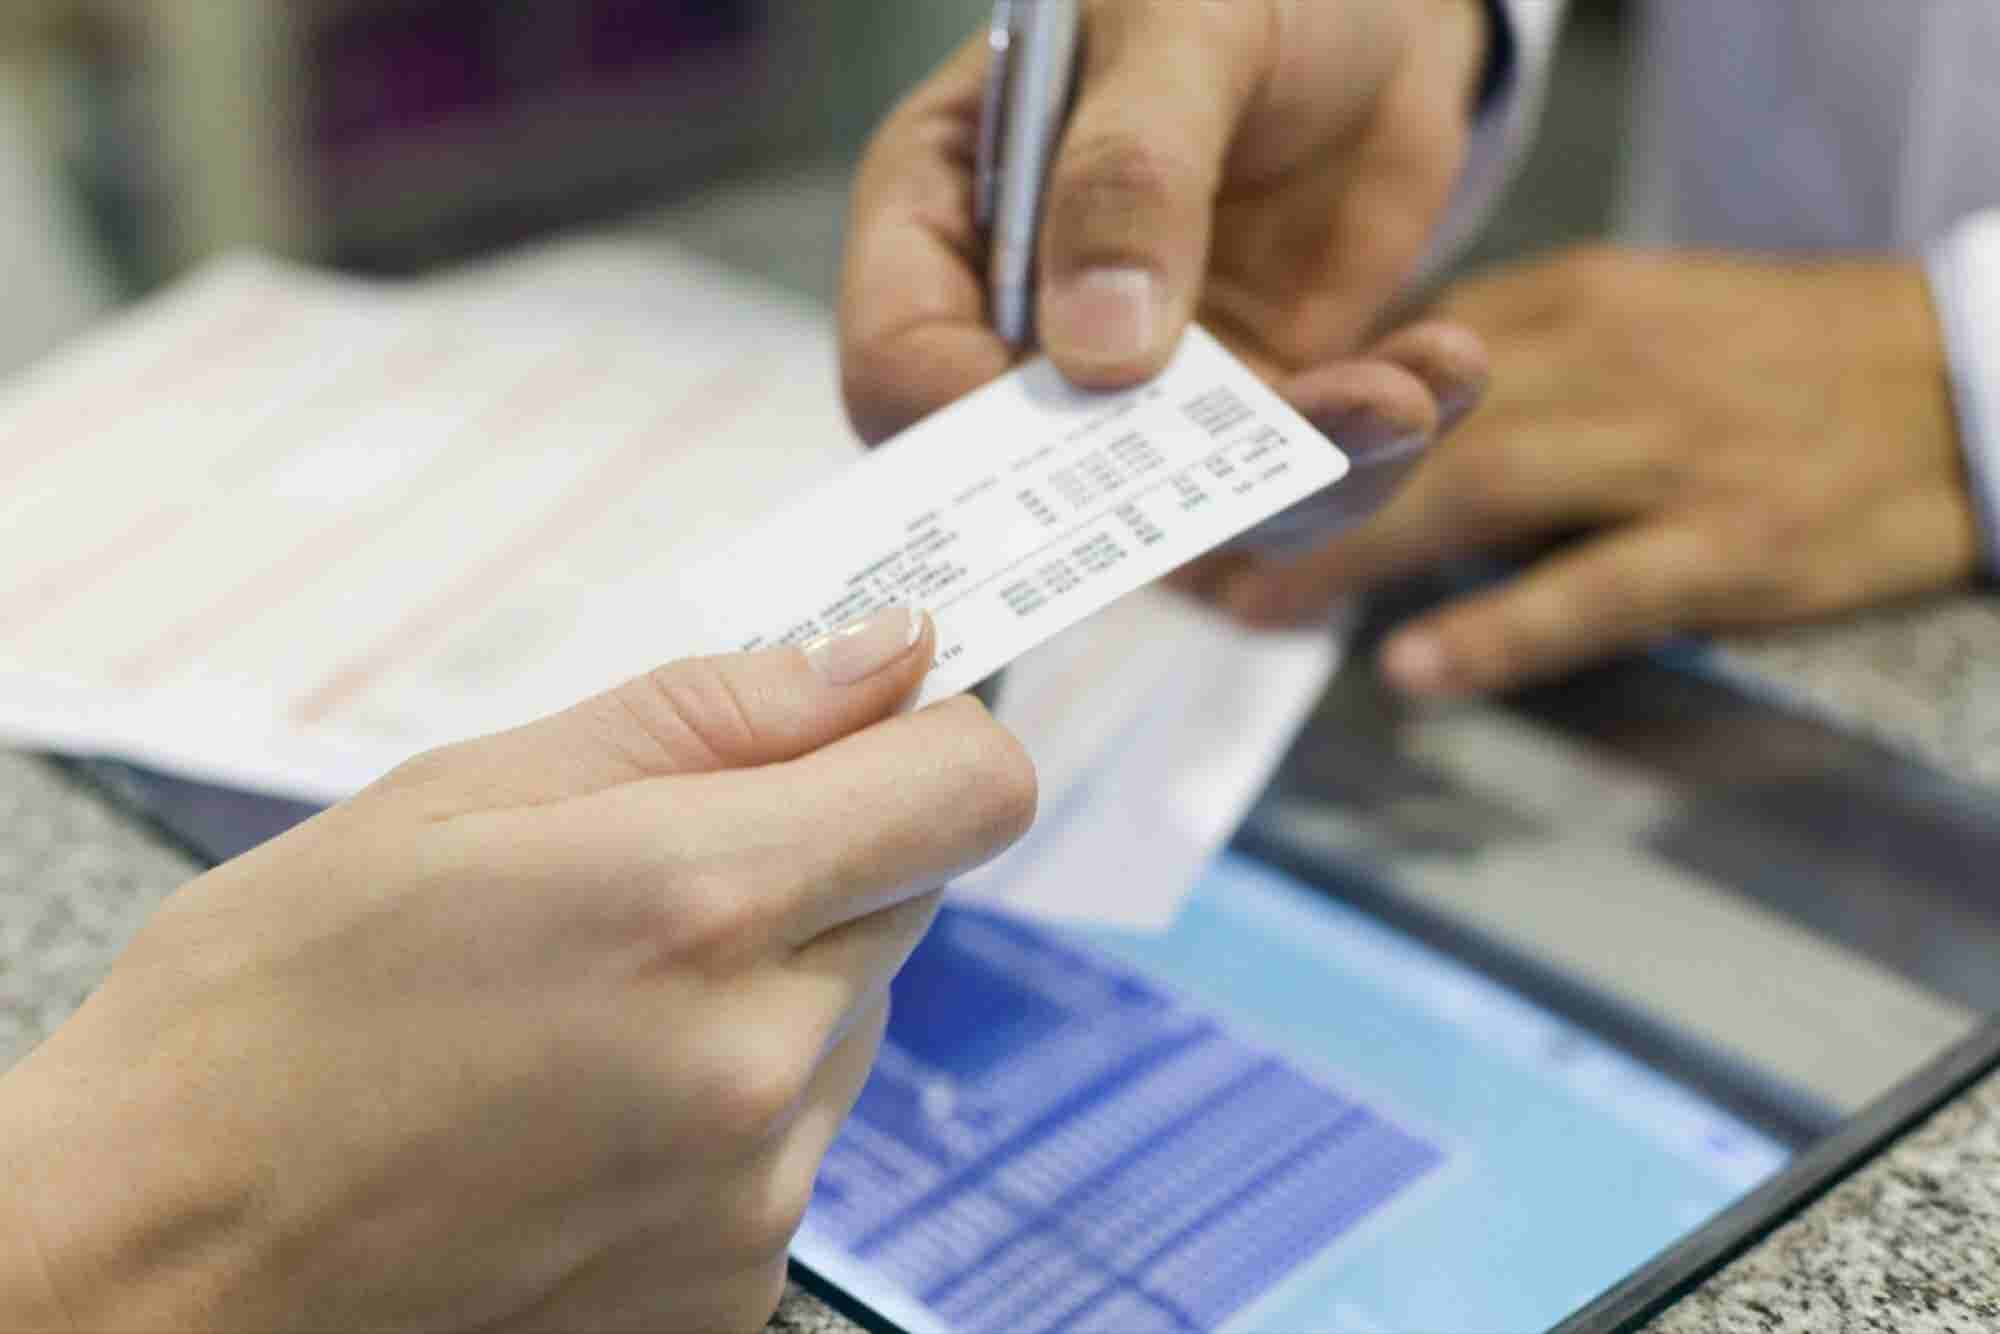 3 Things to Know About Buying Health Insurance